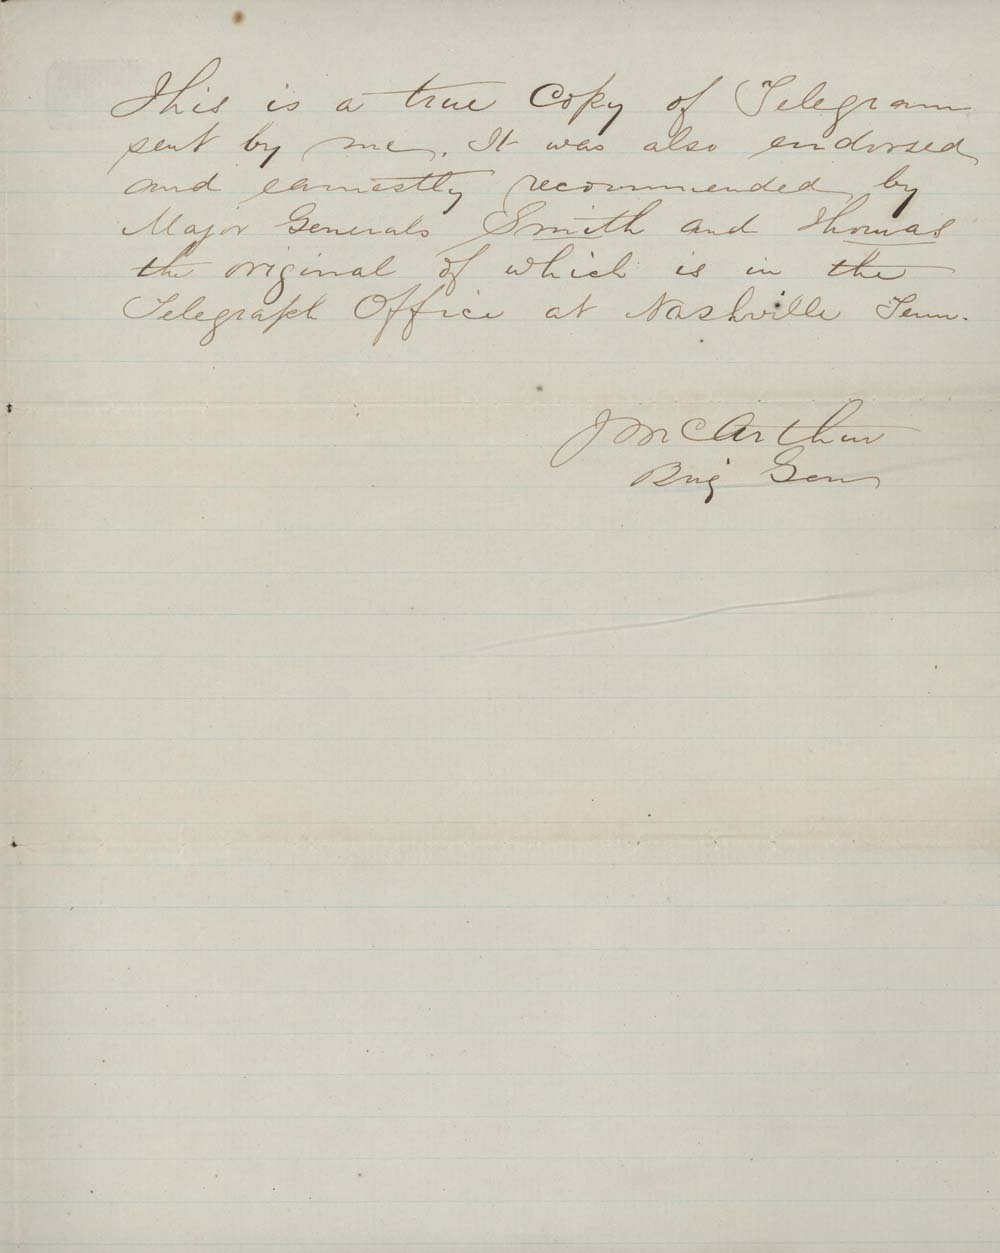 John McArthur to Abraham Lincoln, President of the United States - 2